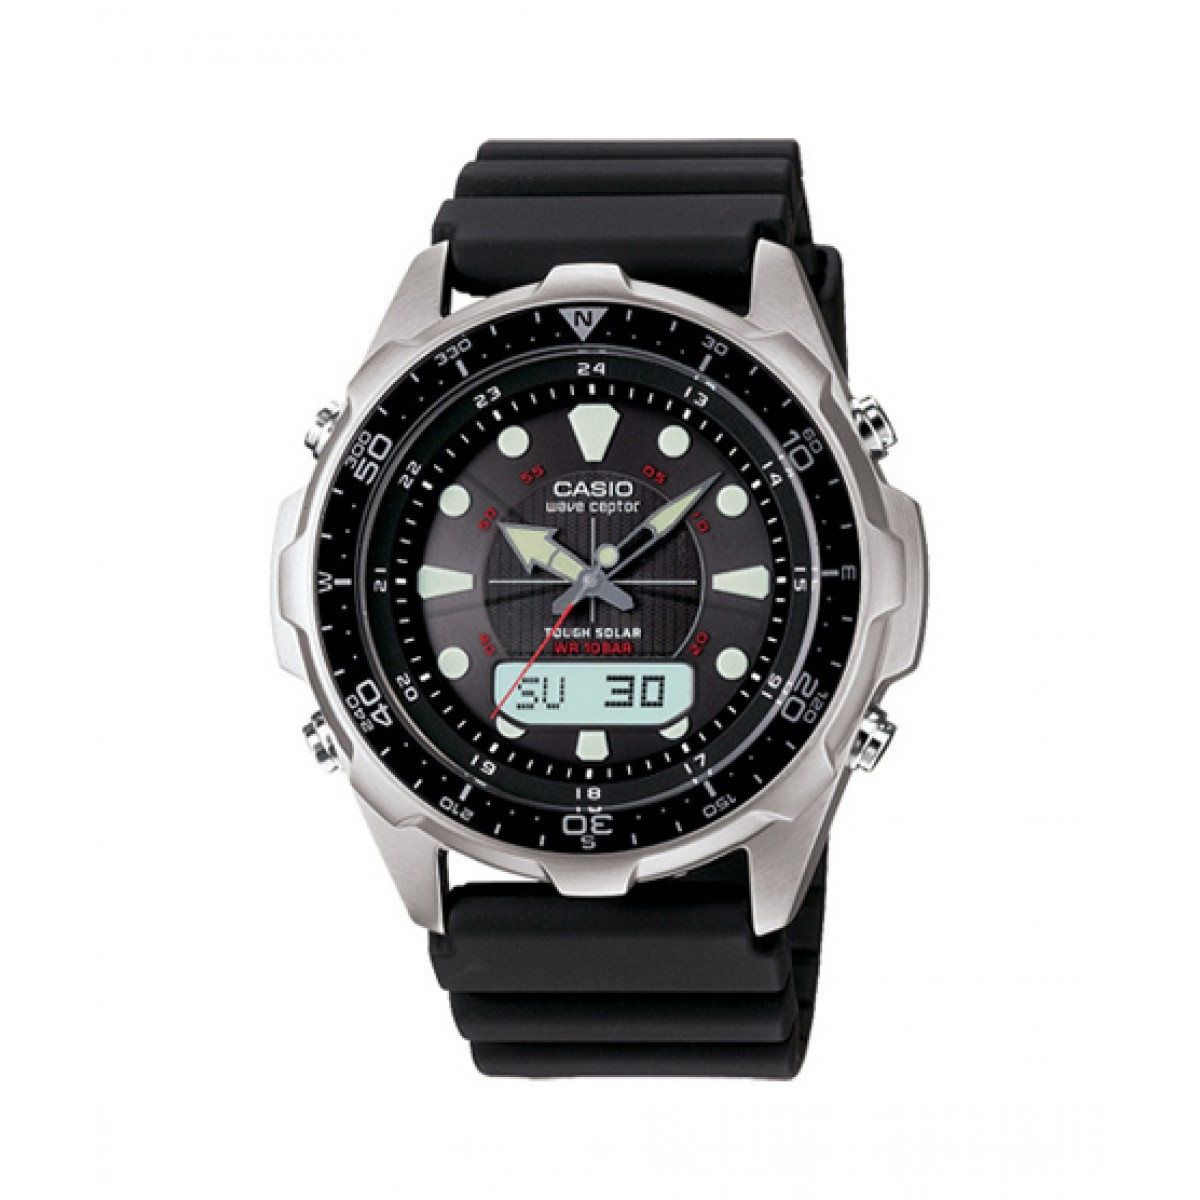 Casio Wave Ceptor Men's Watch (WVA320J-1E)